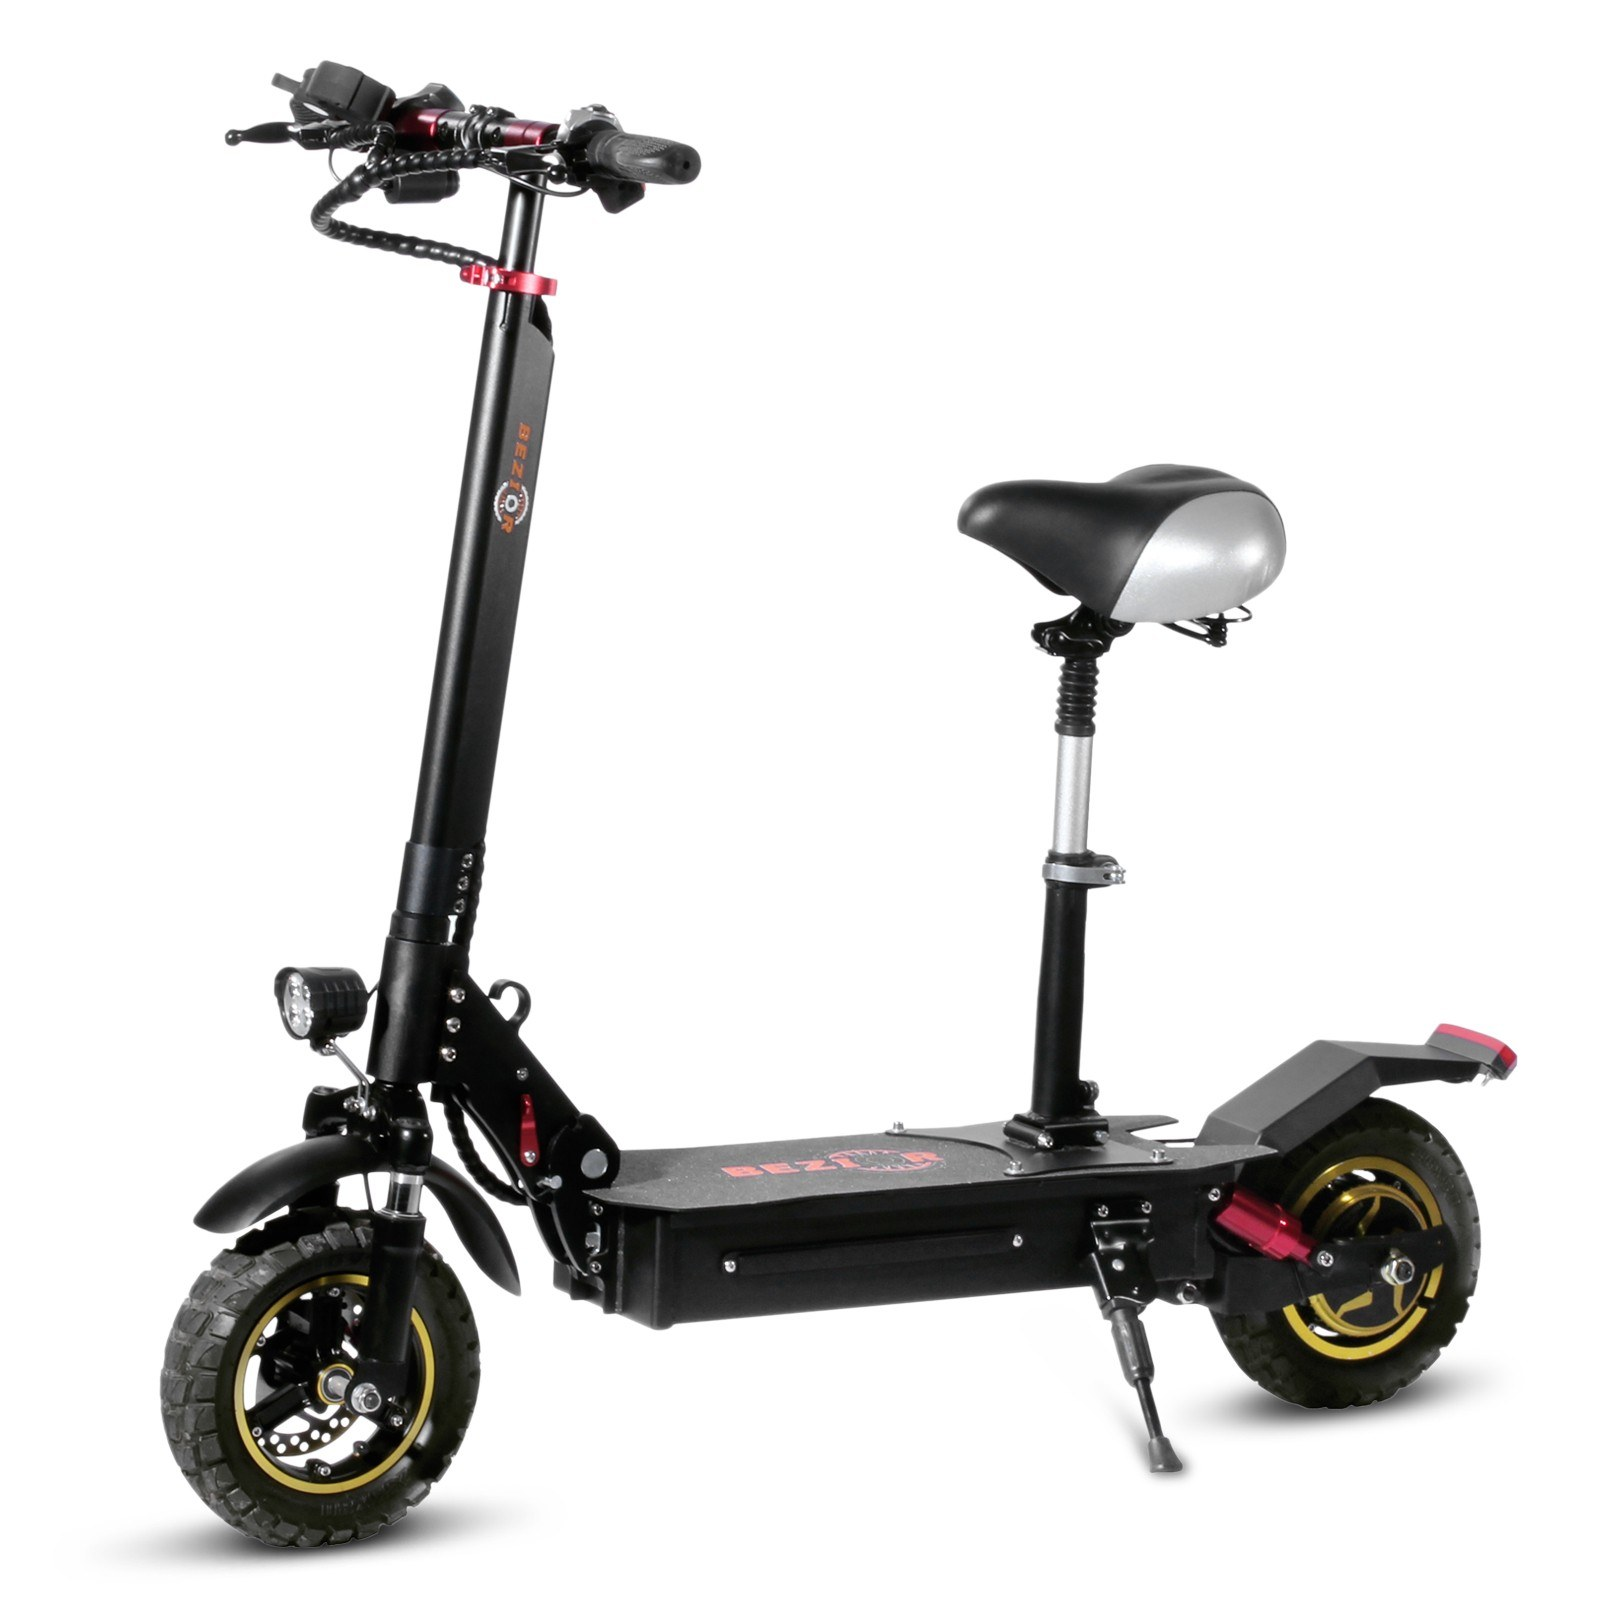 cafago.com - 37% OFF BEZIOR S1 10 Inch Two Wheel Folding Electric Scooter with Saddle Seat,free shipping+$653.00